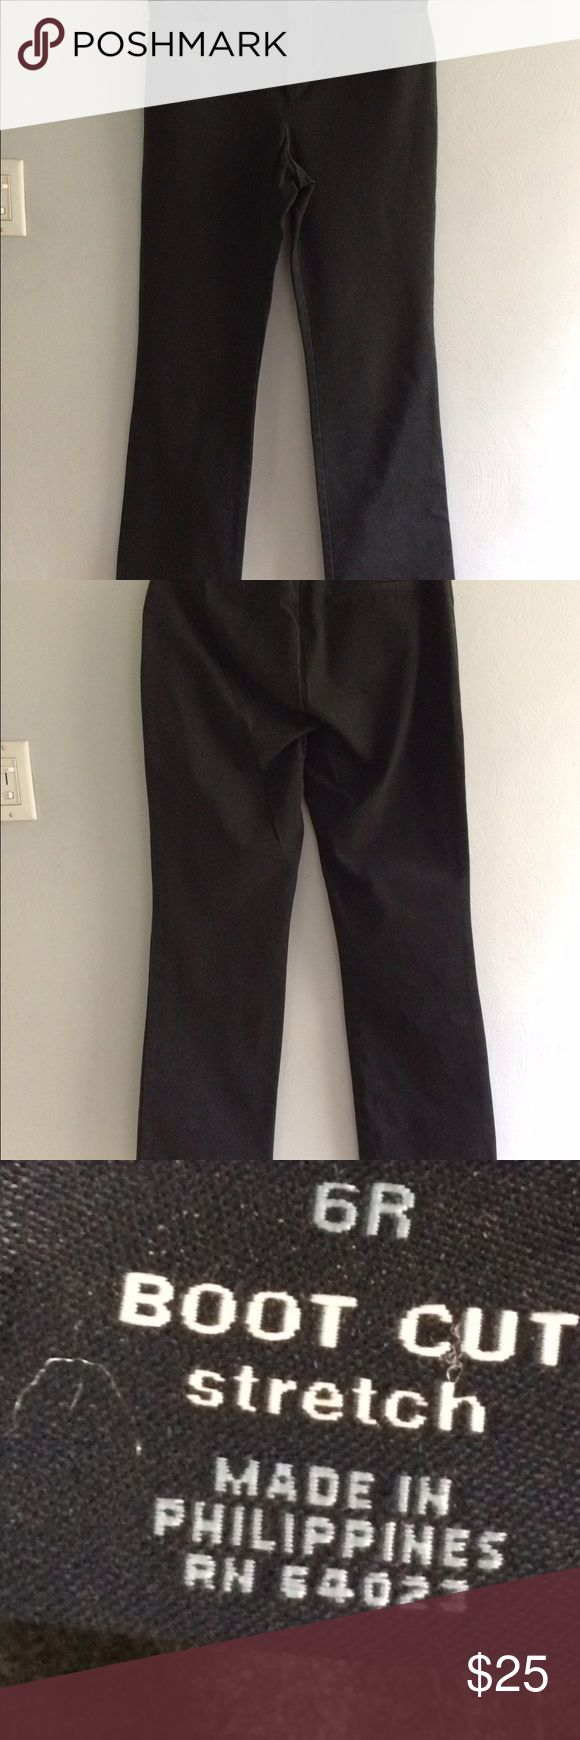 Gap Trouser 54023 bootcut stretch Gap Trouser 54023 bootcut stretch, excellent condition, like new GAP Pants Boot Cut & Flare